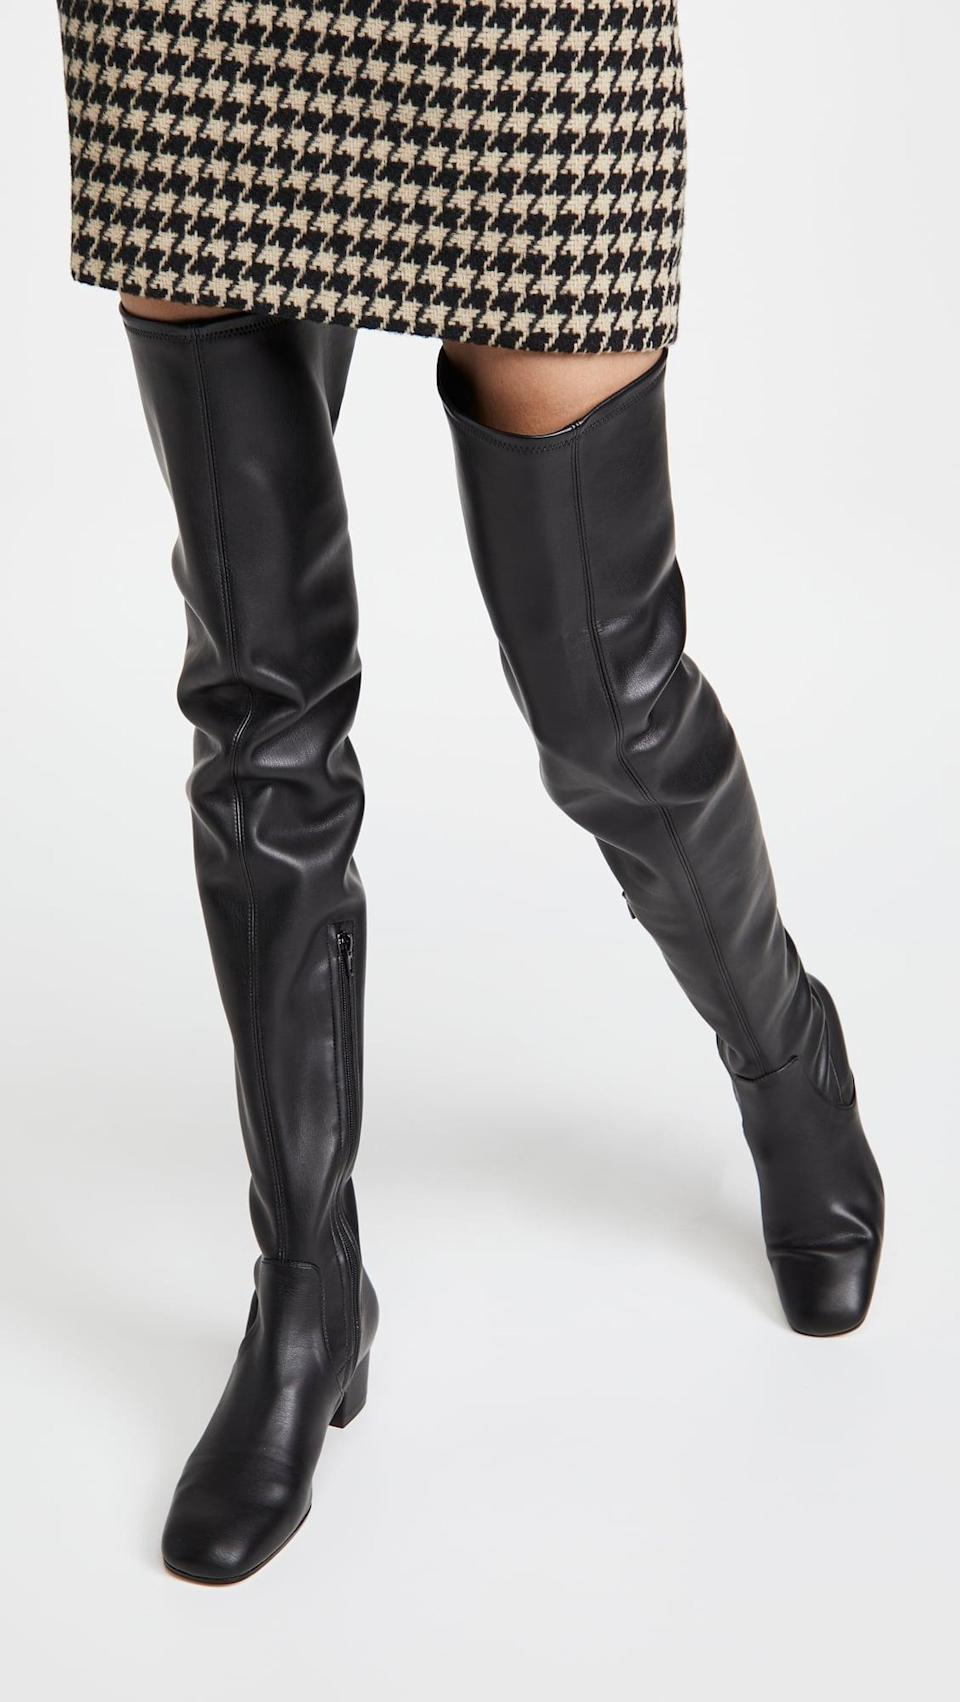 <p>Over the knee boots are coming back in style this season. We like these sleek leather <span>Staud Aimee Boots</span> ($495).</p>